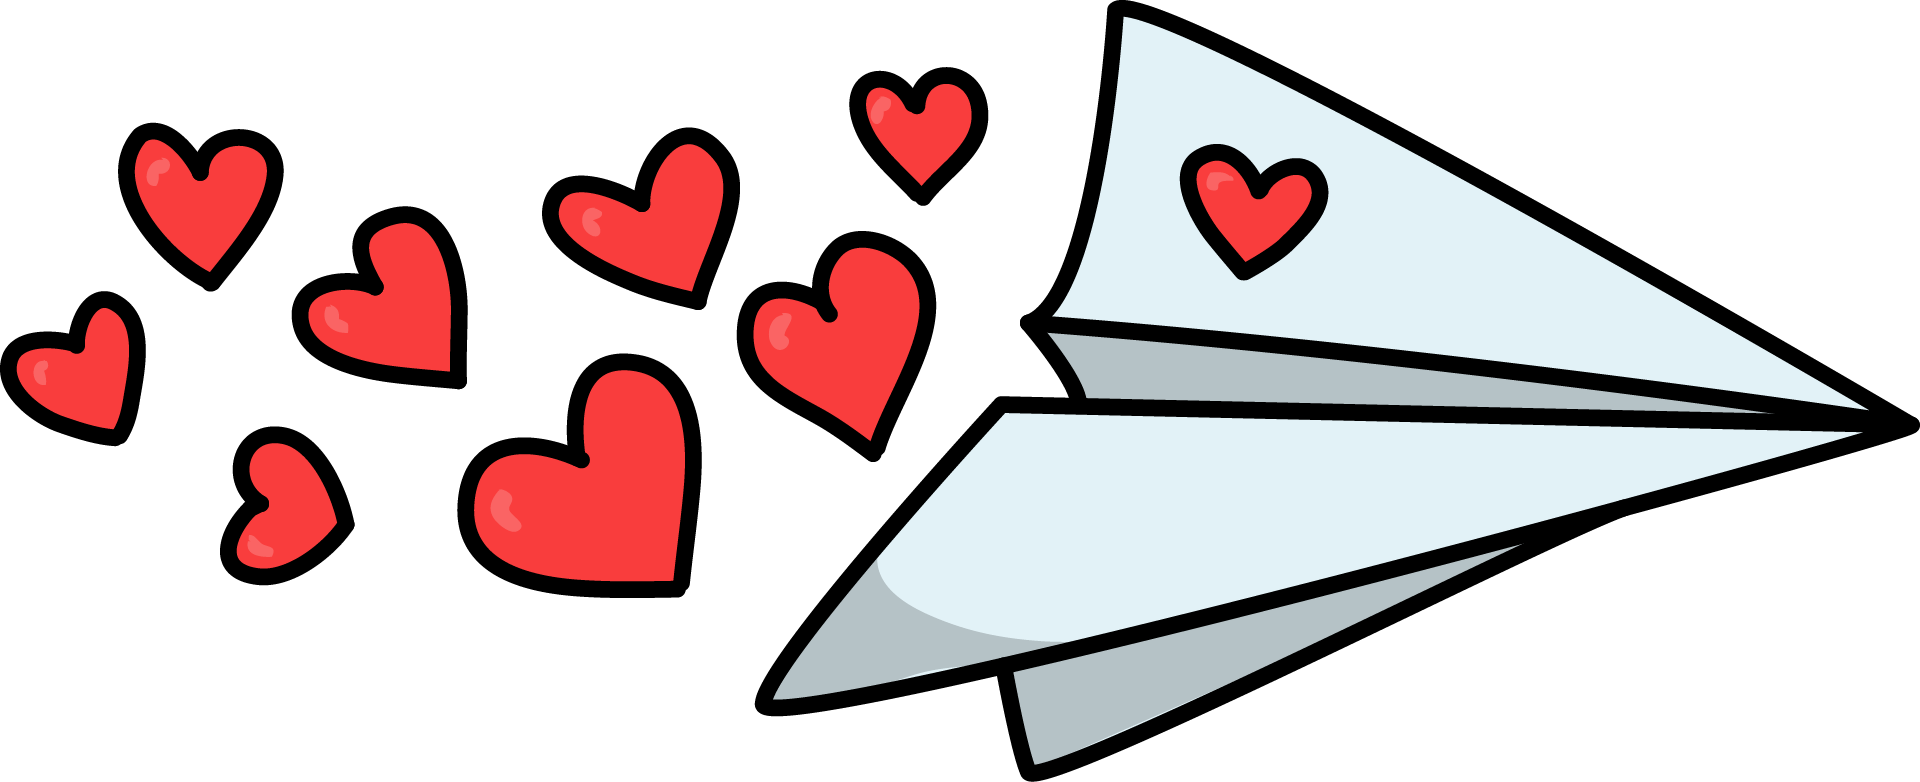 Dashed heart clipart. Free paper plane with